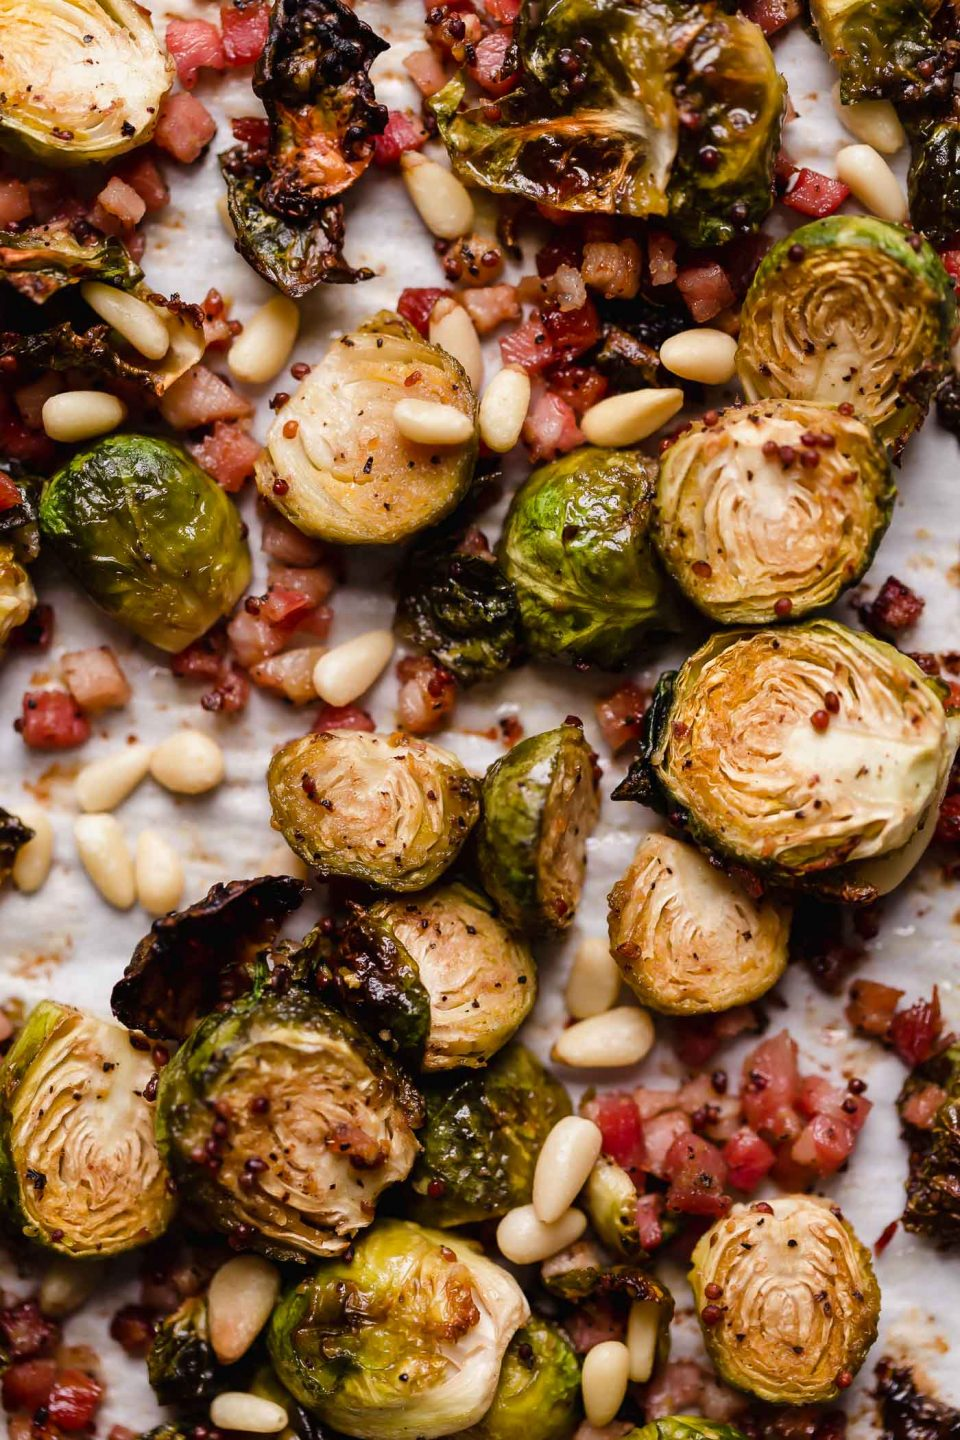 Maple mustard roasted brussels sprouts with pancetta & pine nuts arranged on a parchment-lined baking sheet. The brussels sprouts are beautifully golden brown, having been roasted.